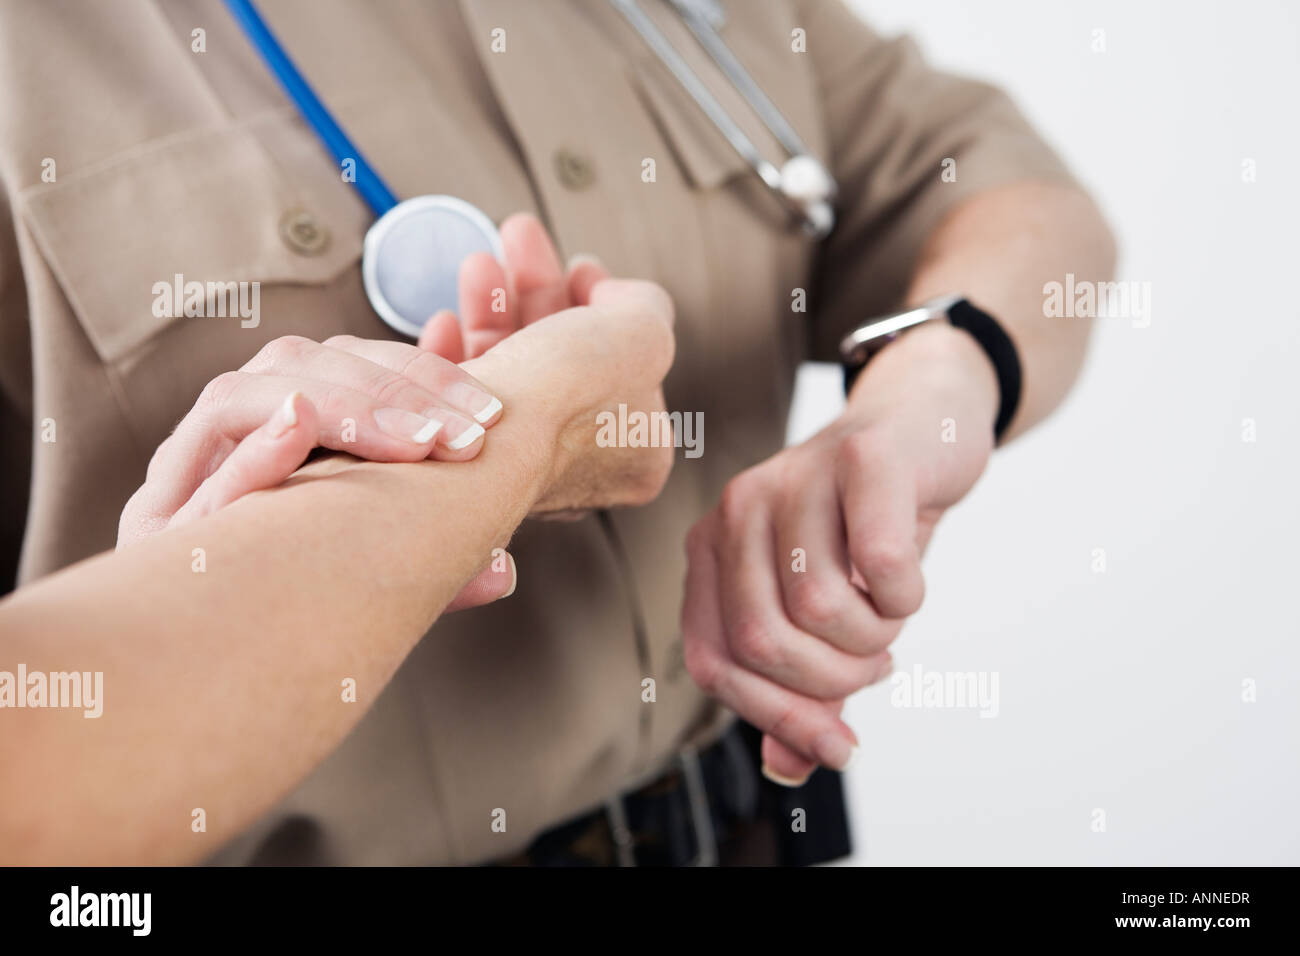 View of Emergency Medical Service officer checking the pulse of a patient. Stock Photo